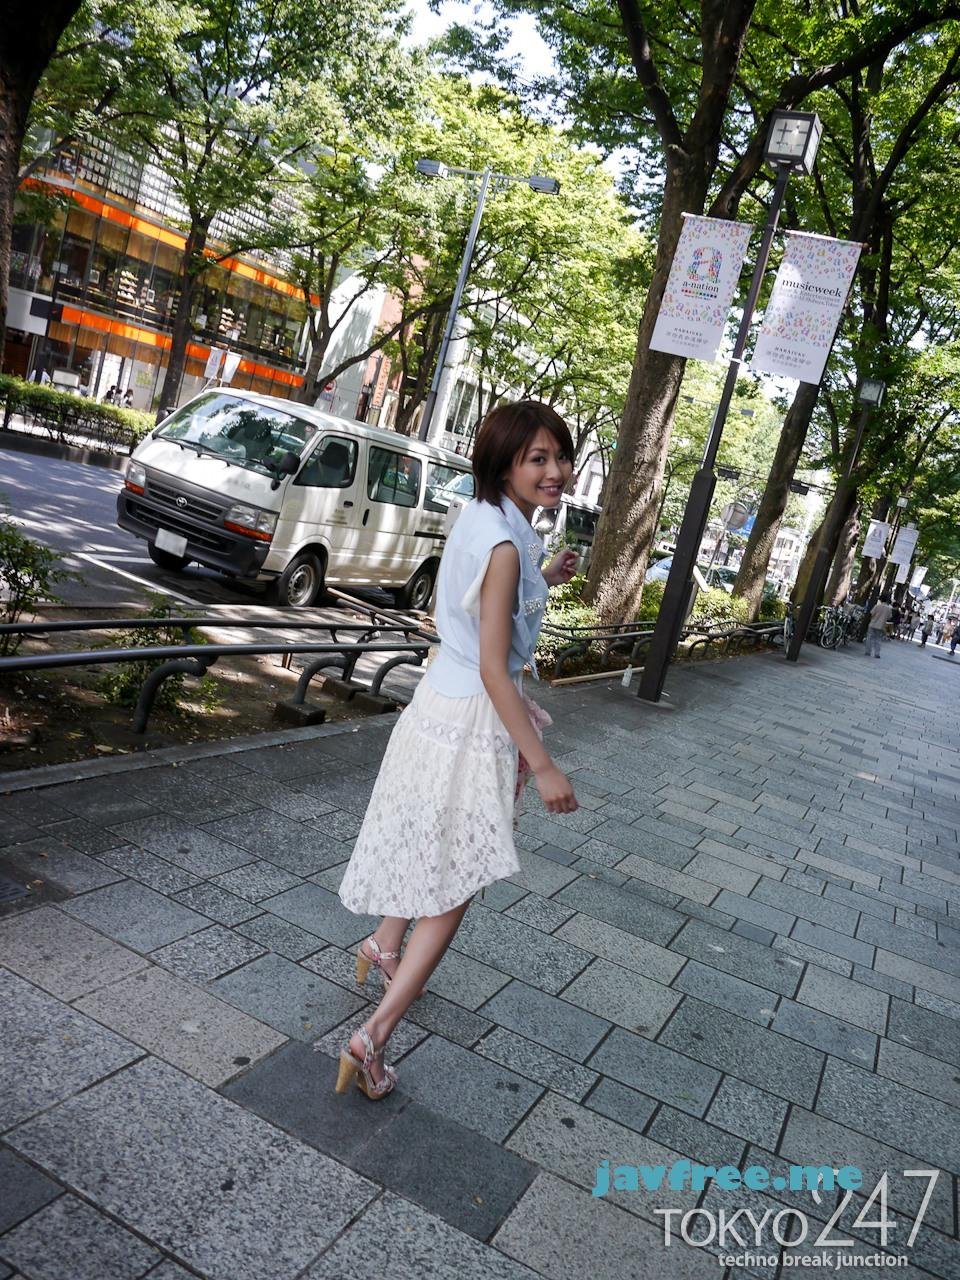 Tokyo-247 406yuuki夏目優希 - image ms_406yuuki002 on https://javfree.me